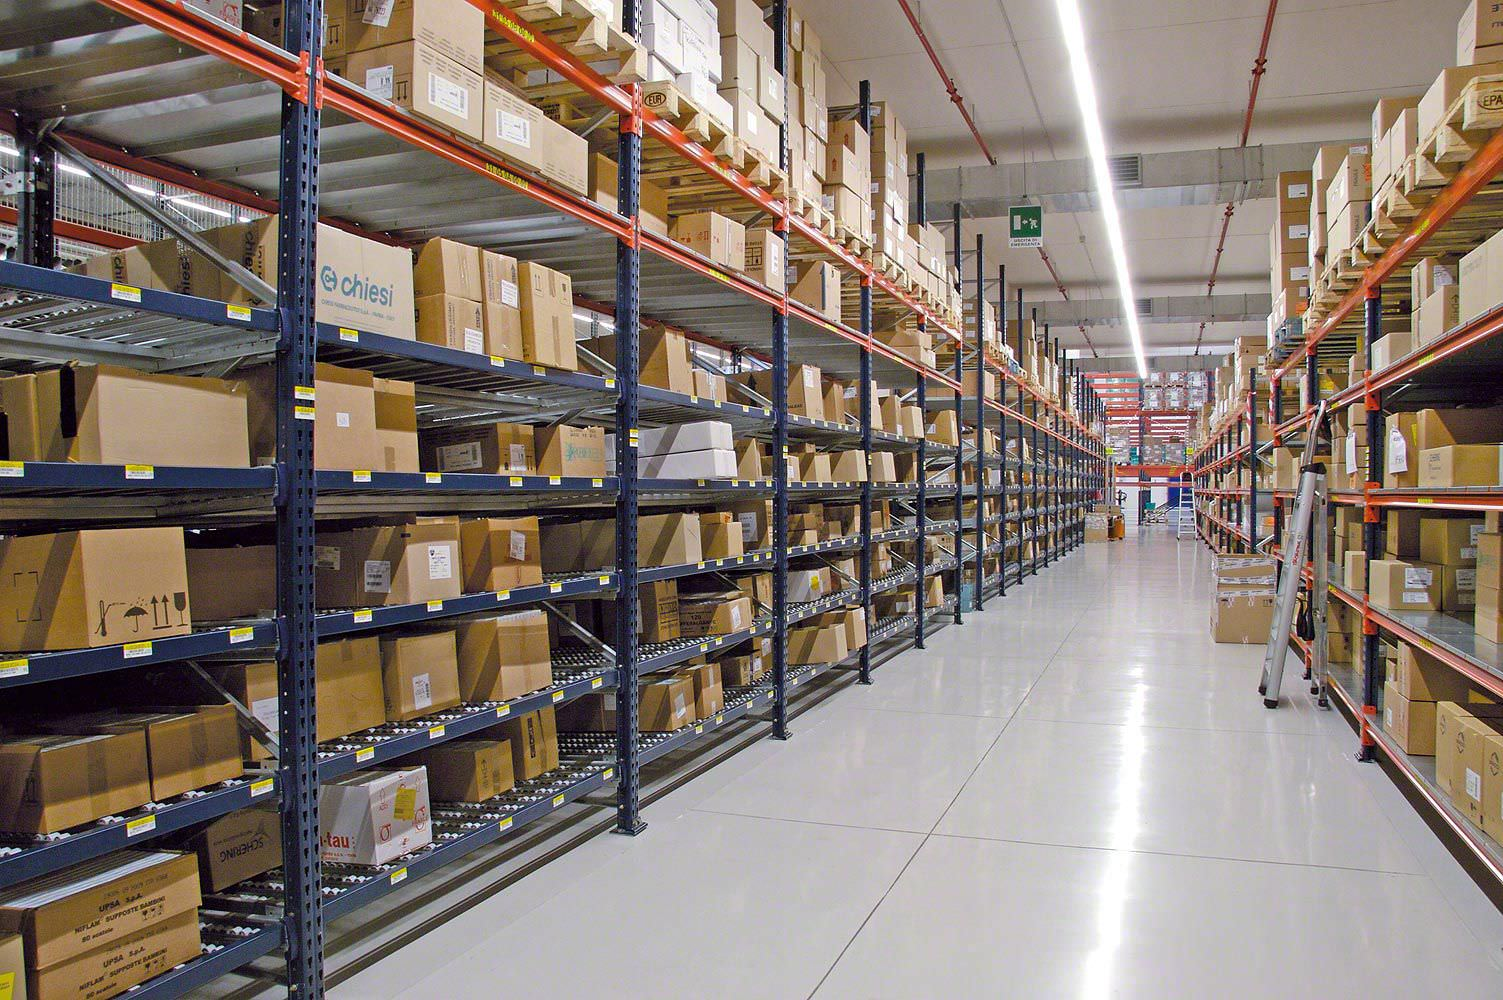 Warehouses in Southern India